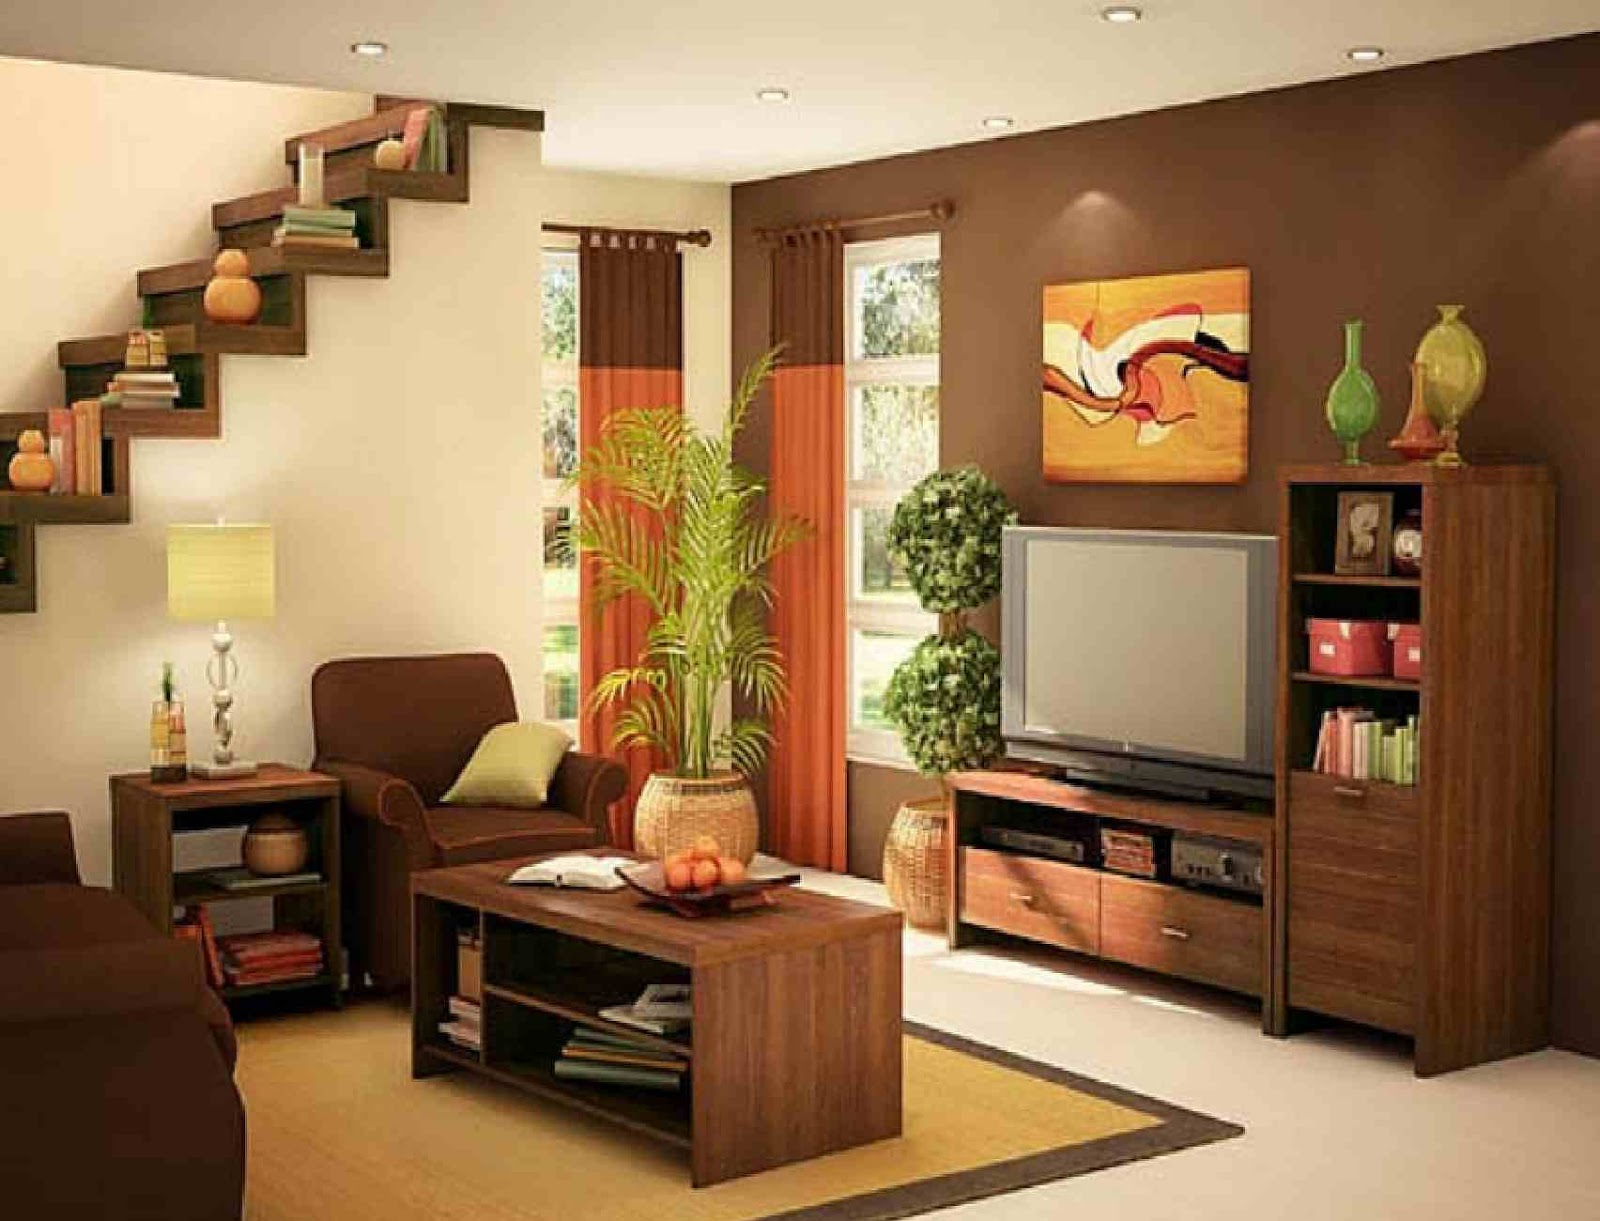 Home interior designs simple living room designs Interior decorating ideas for small living room